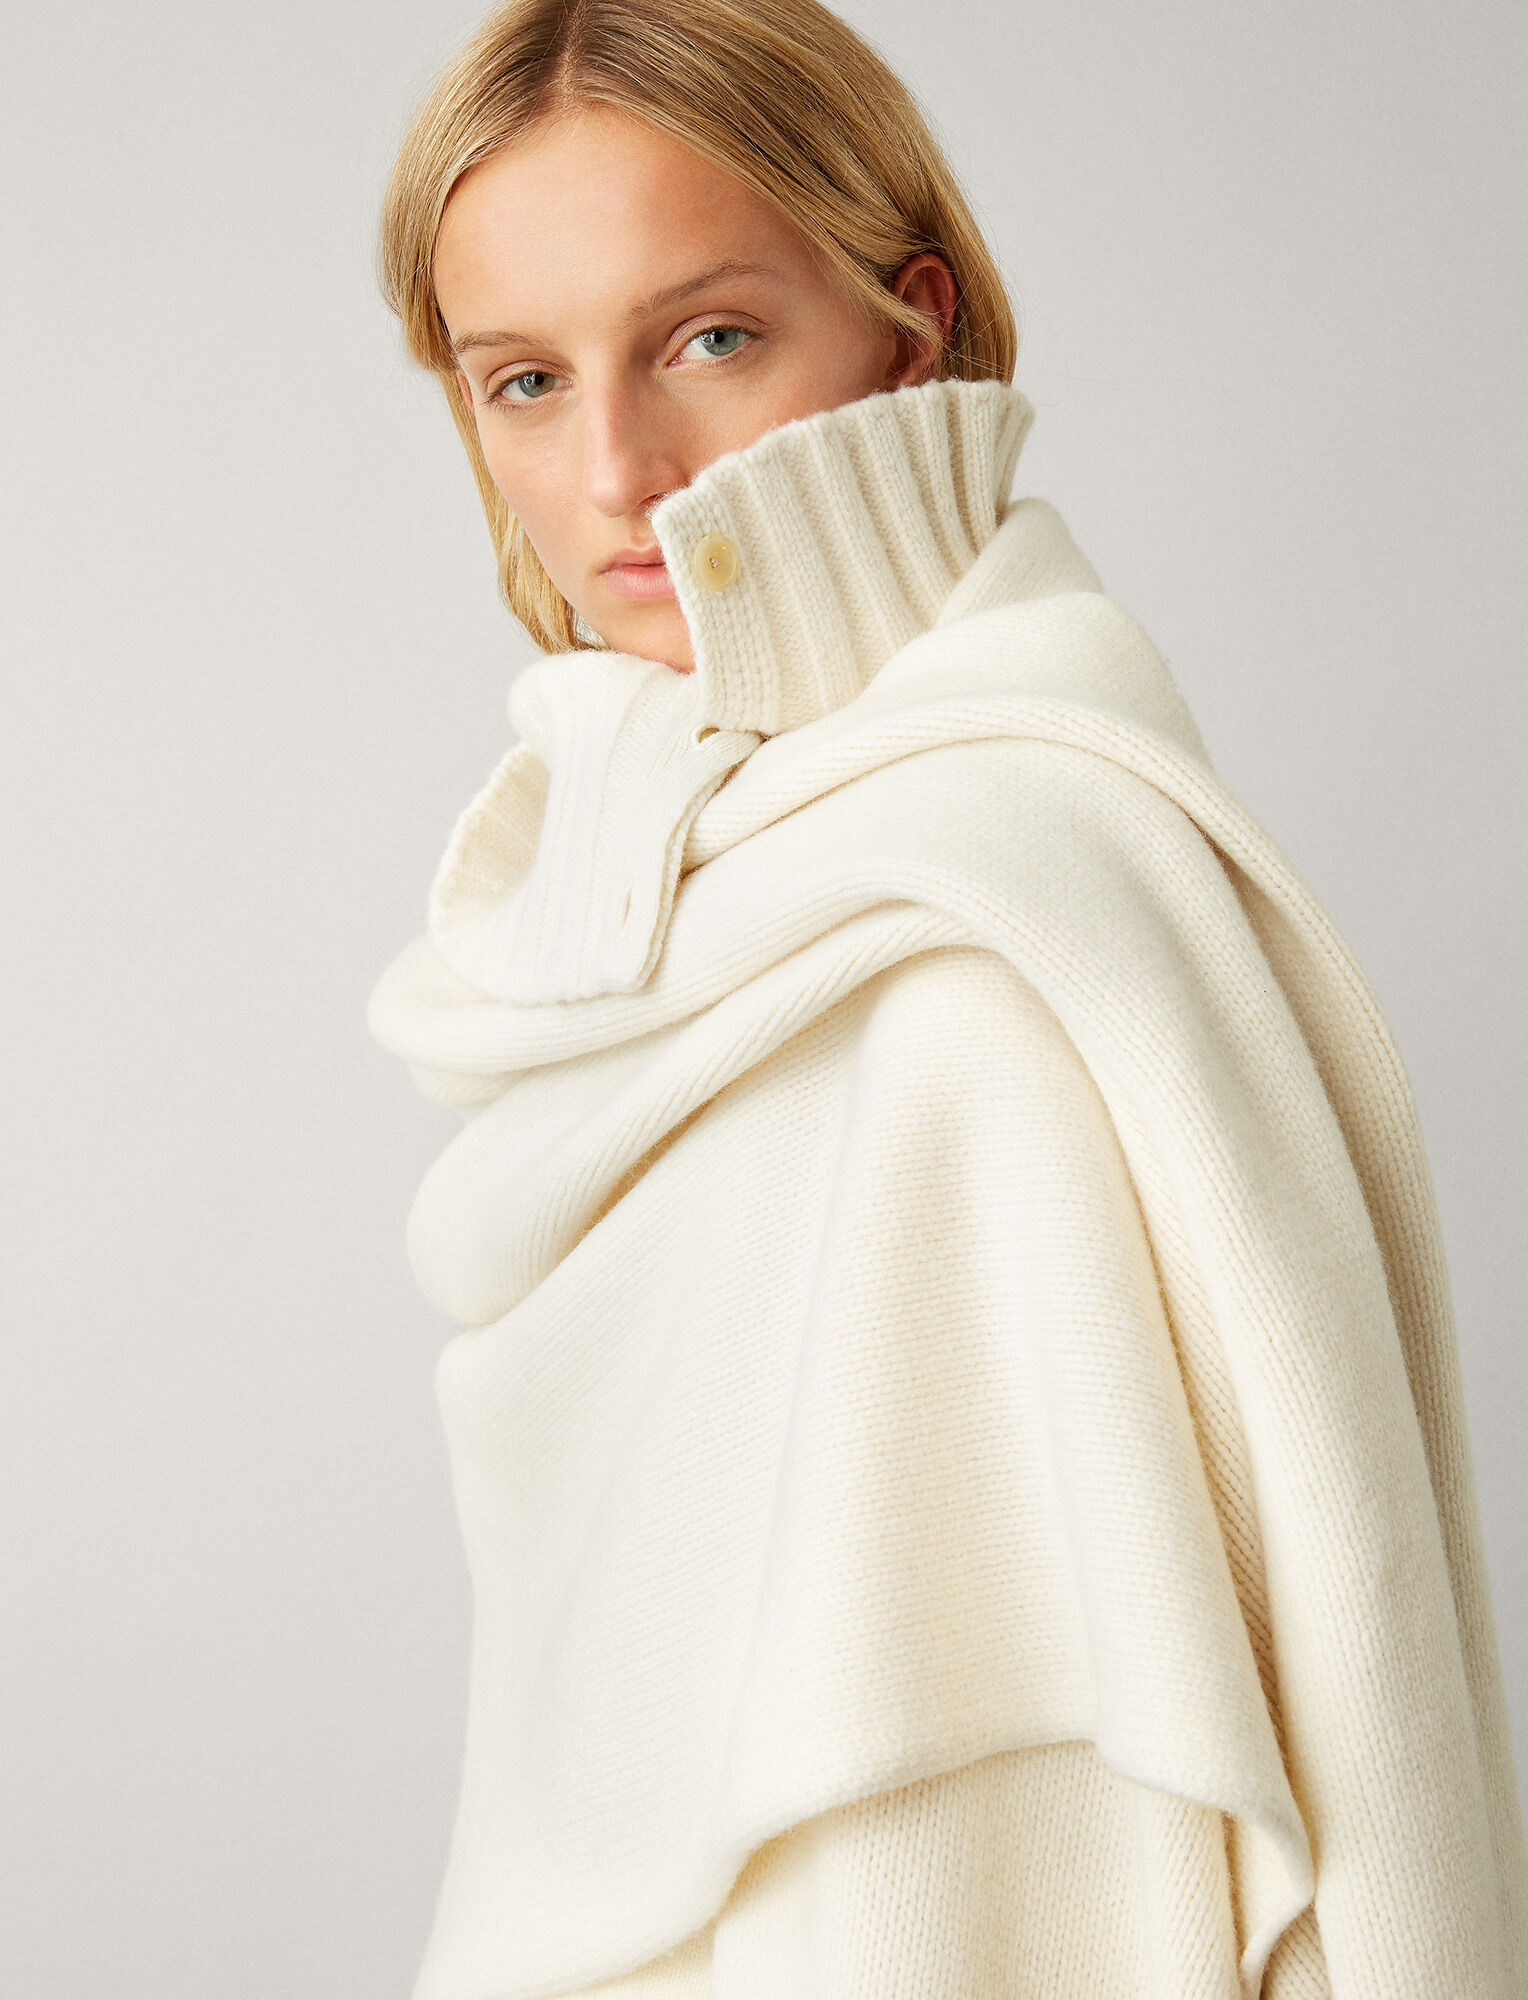 Joseph, Boiled Wool Snood Scarf, in CREAM